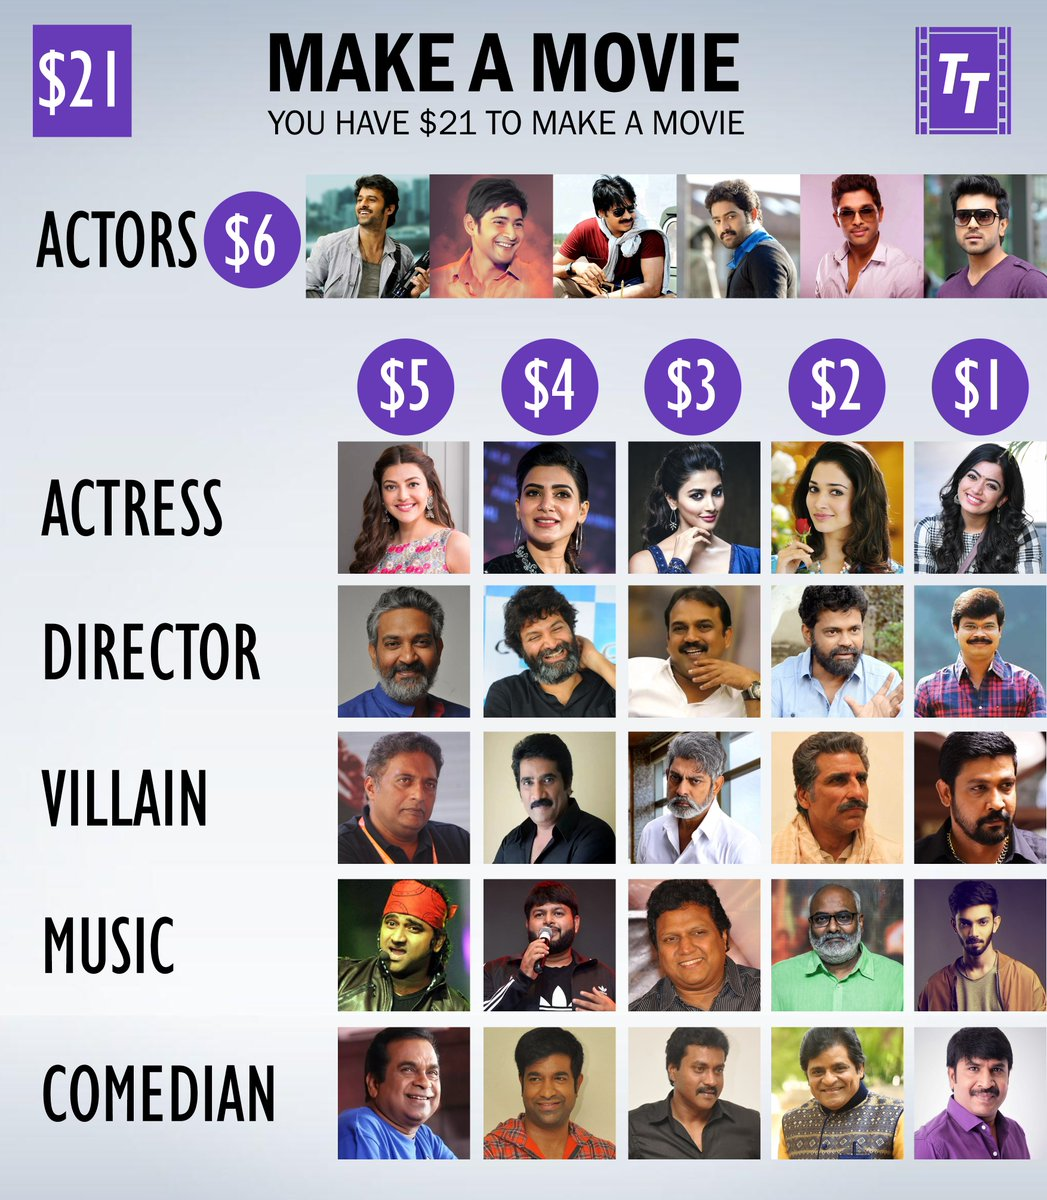 Make A Movie 🎬  You got $21 budget to make a movie. Who would you select as cast and crew in your movie?  Note: Selecting one from each category is mandatory.  #TrackTollywood https://t.co/DNwSKet6Pa